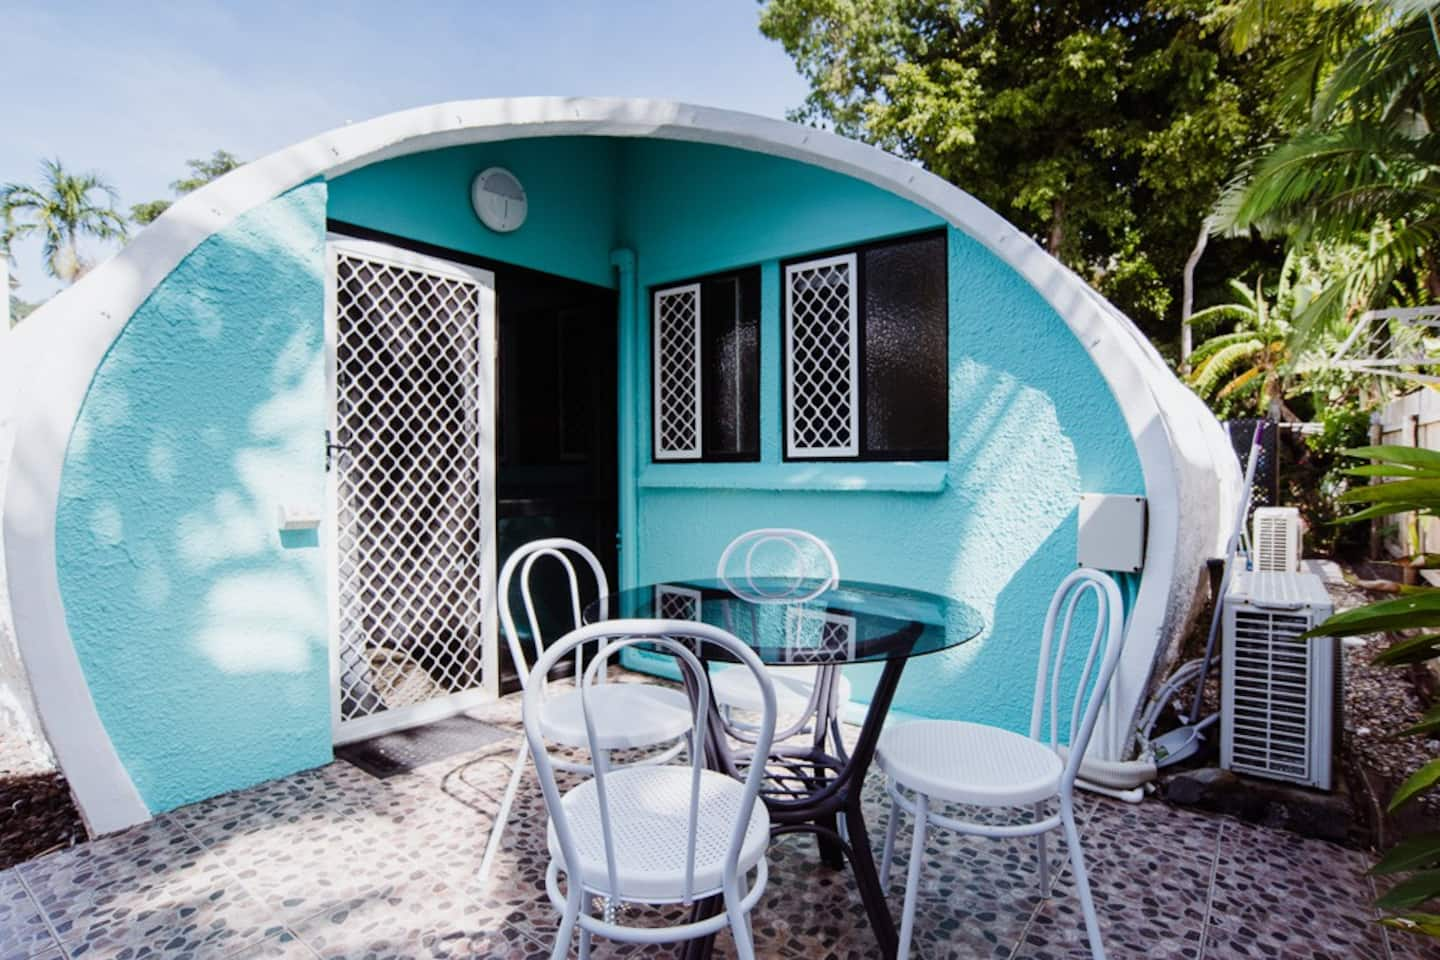 Unique Igloo Airbnb Cairns